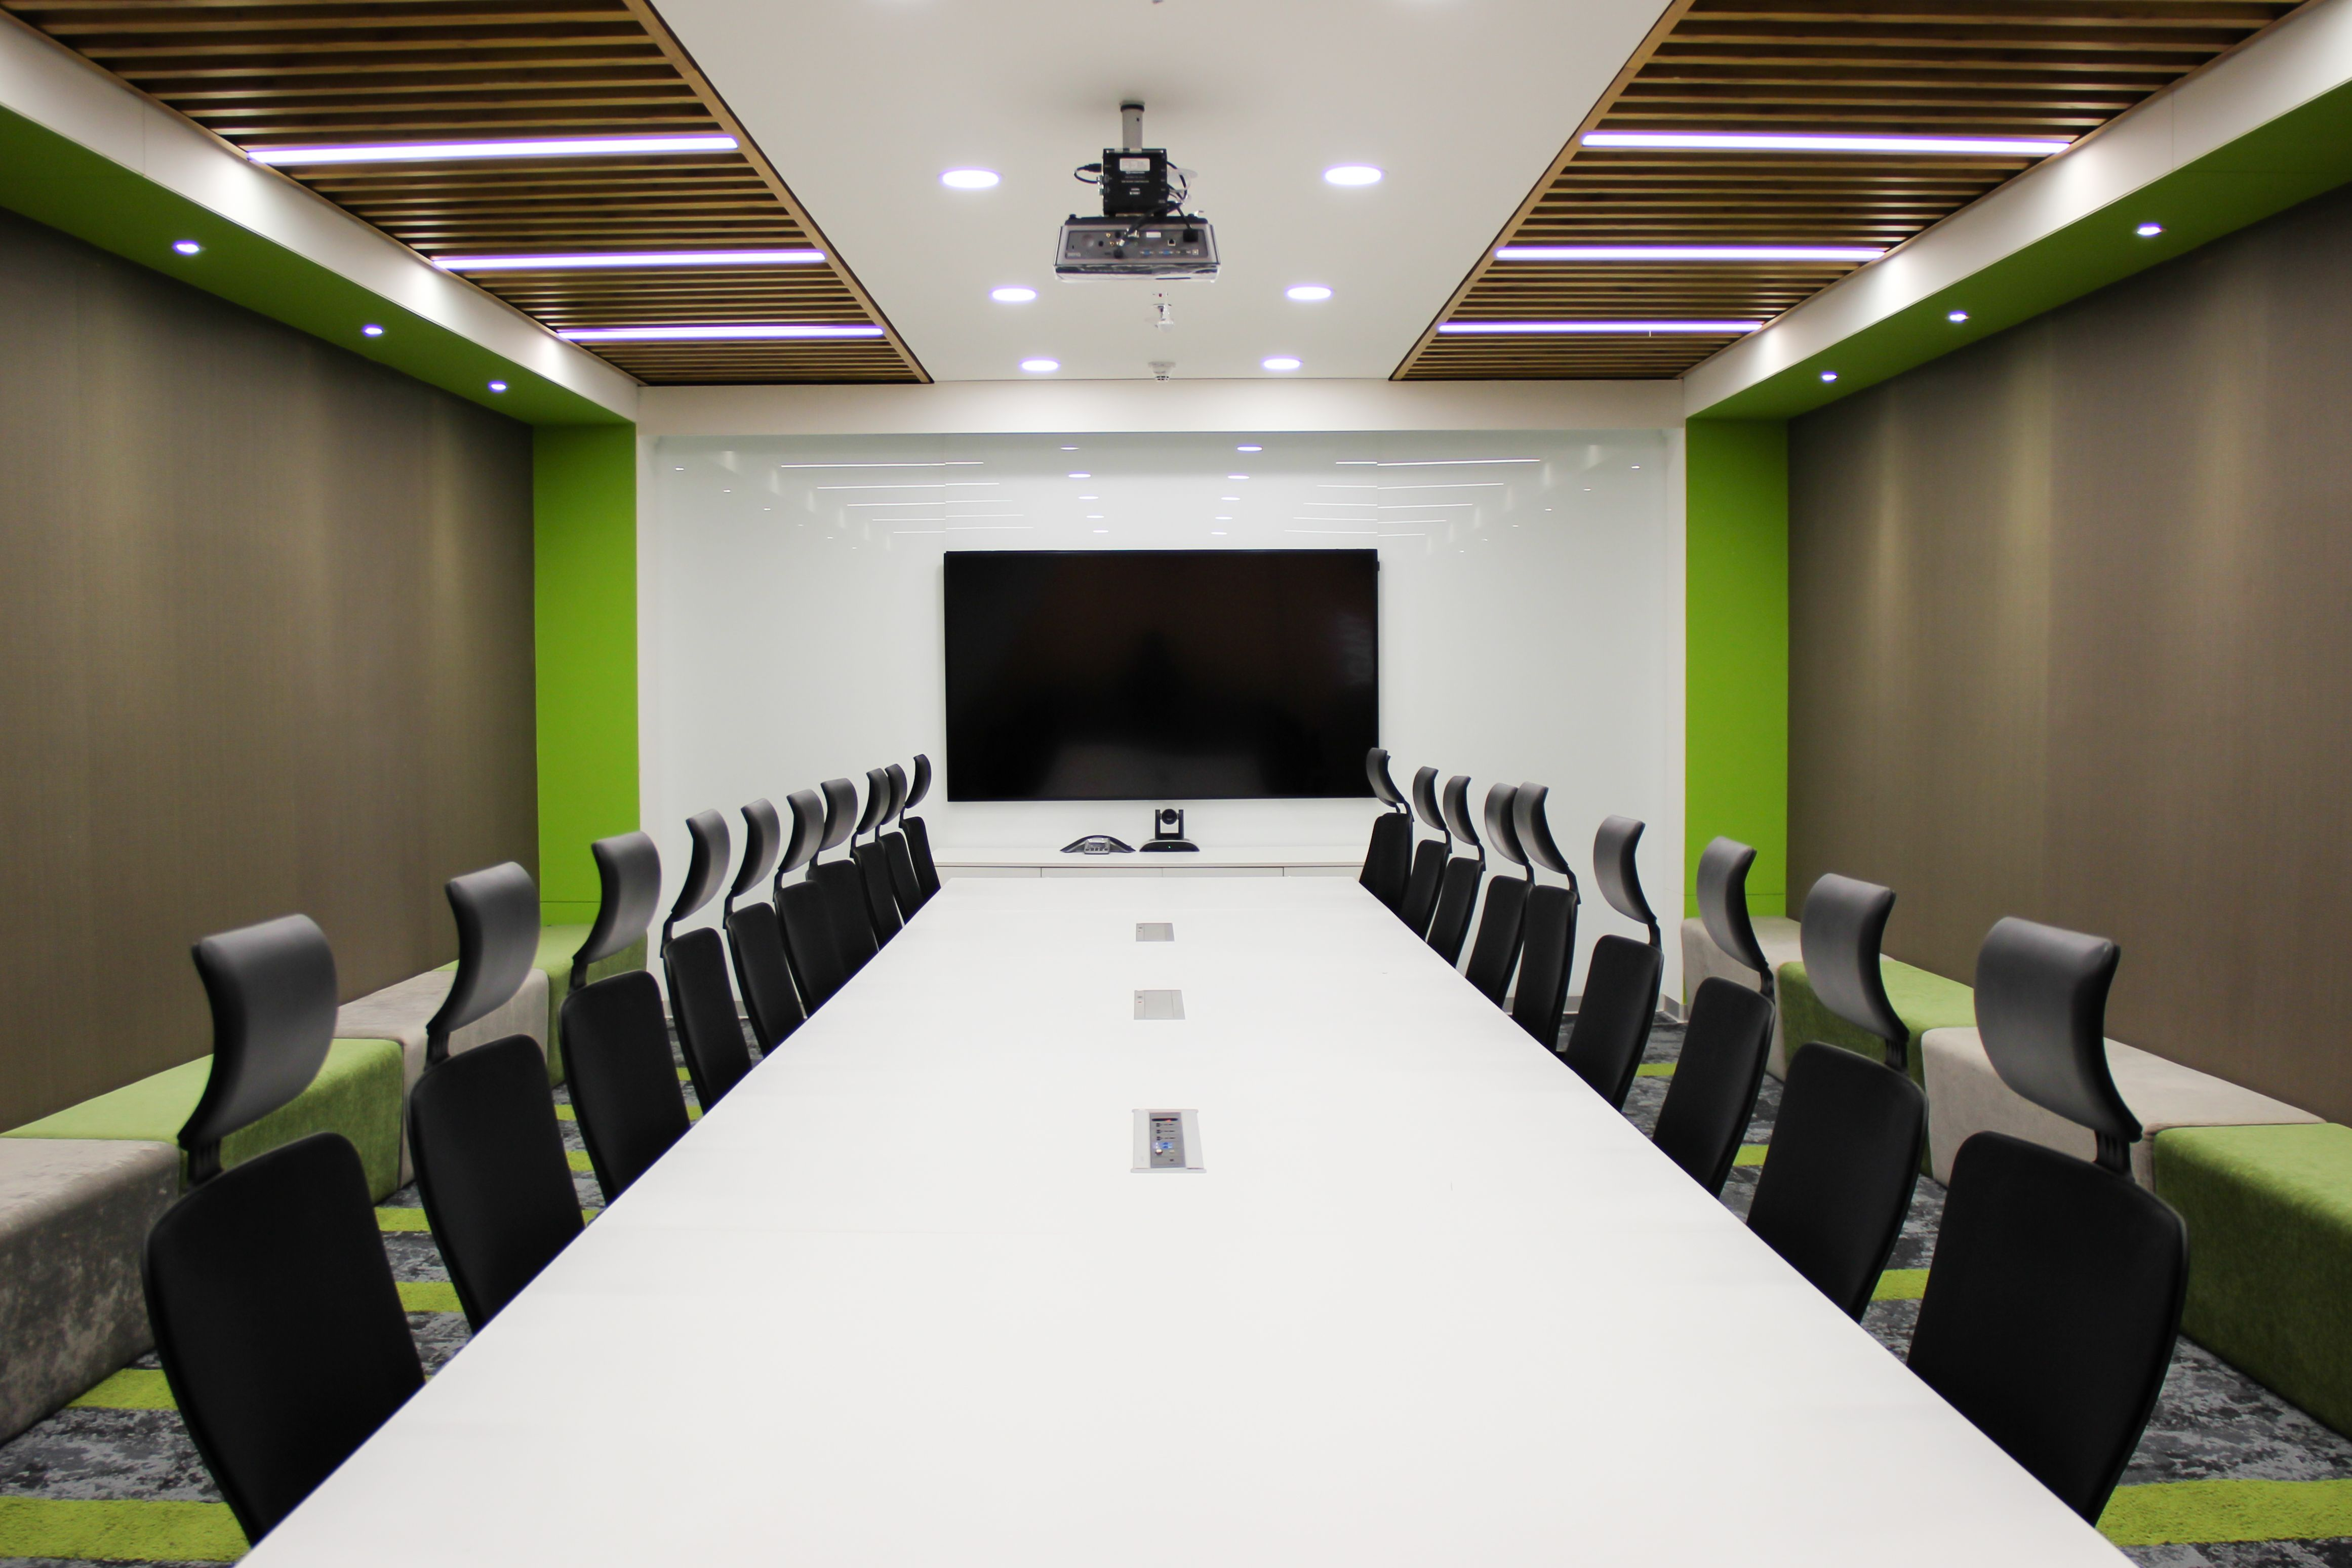 The Minimalist Office Meeting Room Conference Room Design Office Meeting Room Interior Design Modern conference room colors